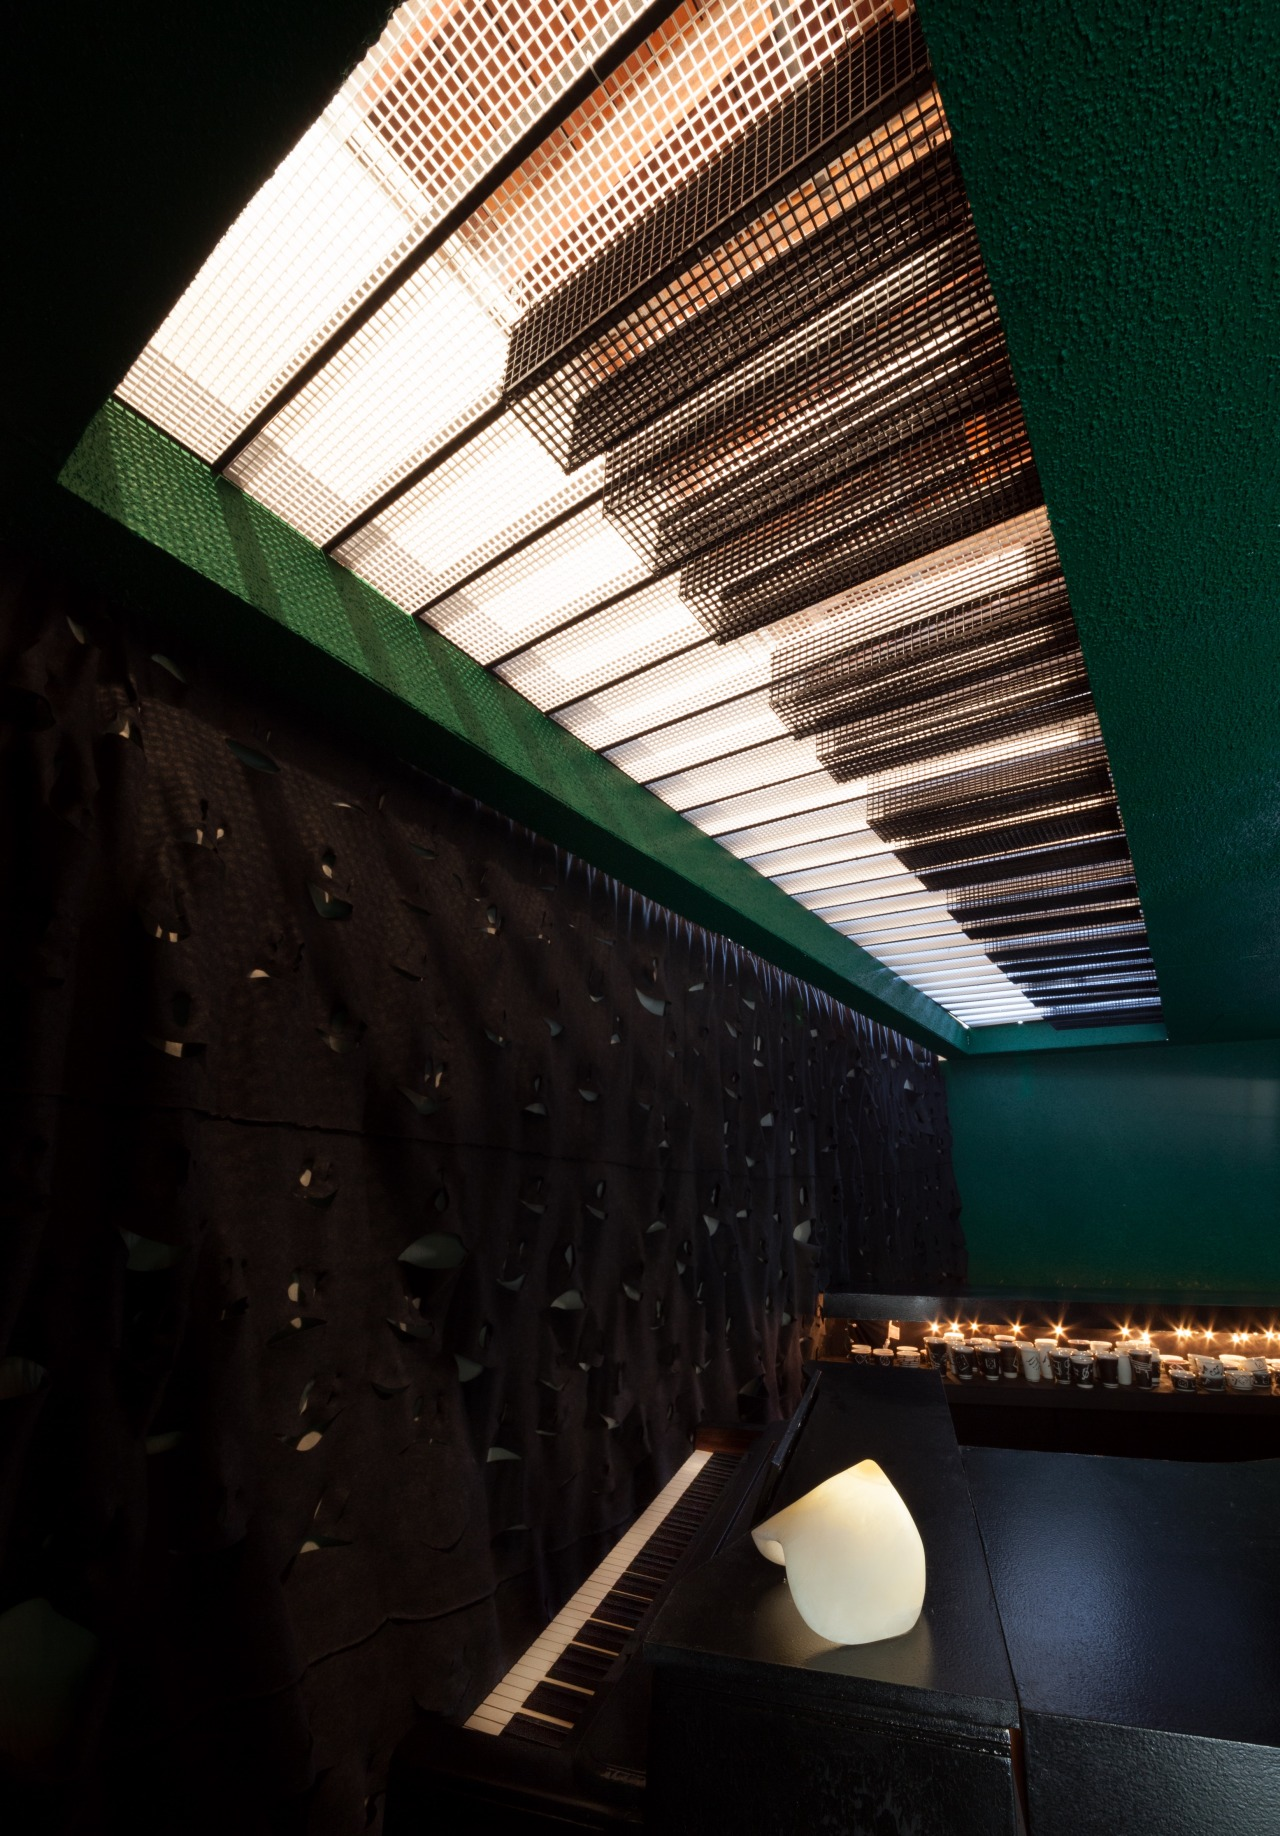 Designer/Artist Joakim Dahlqvist designed the accompanying piano light fixture while Artist Grant Levy Lucero designed and produced the dramatic backdrop of the bar. The Boob Light is the work of artist Nevine Mahmoud.